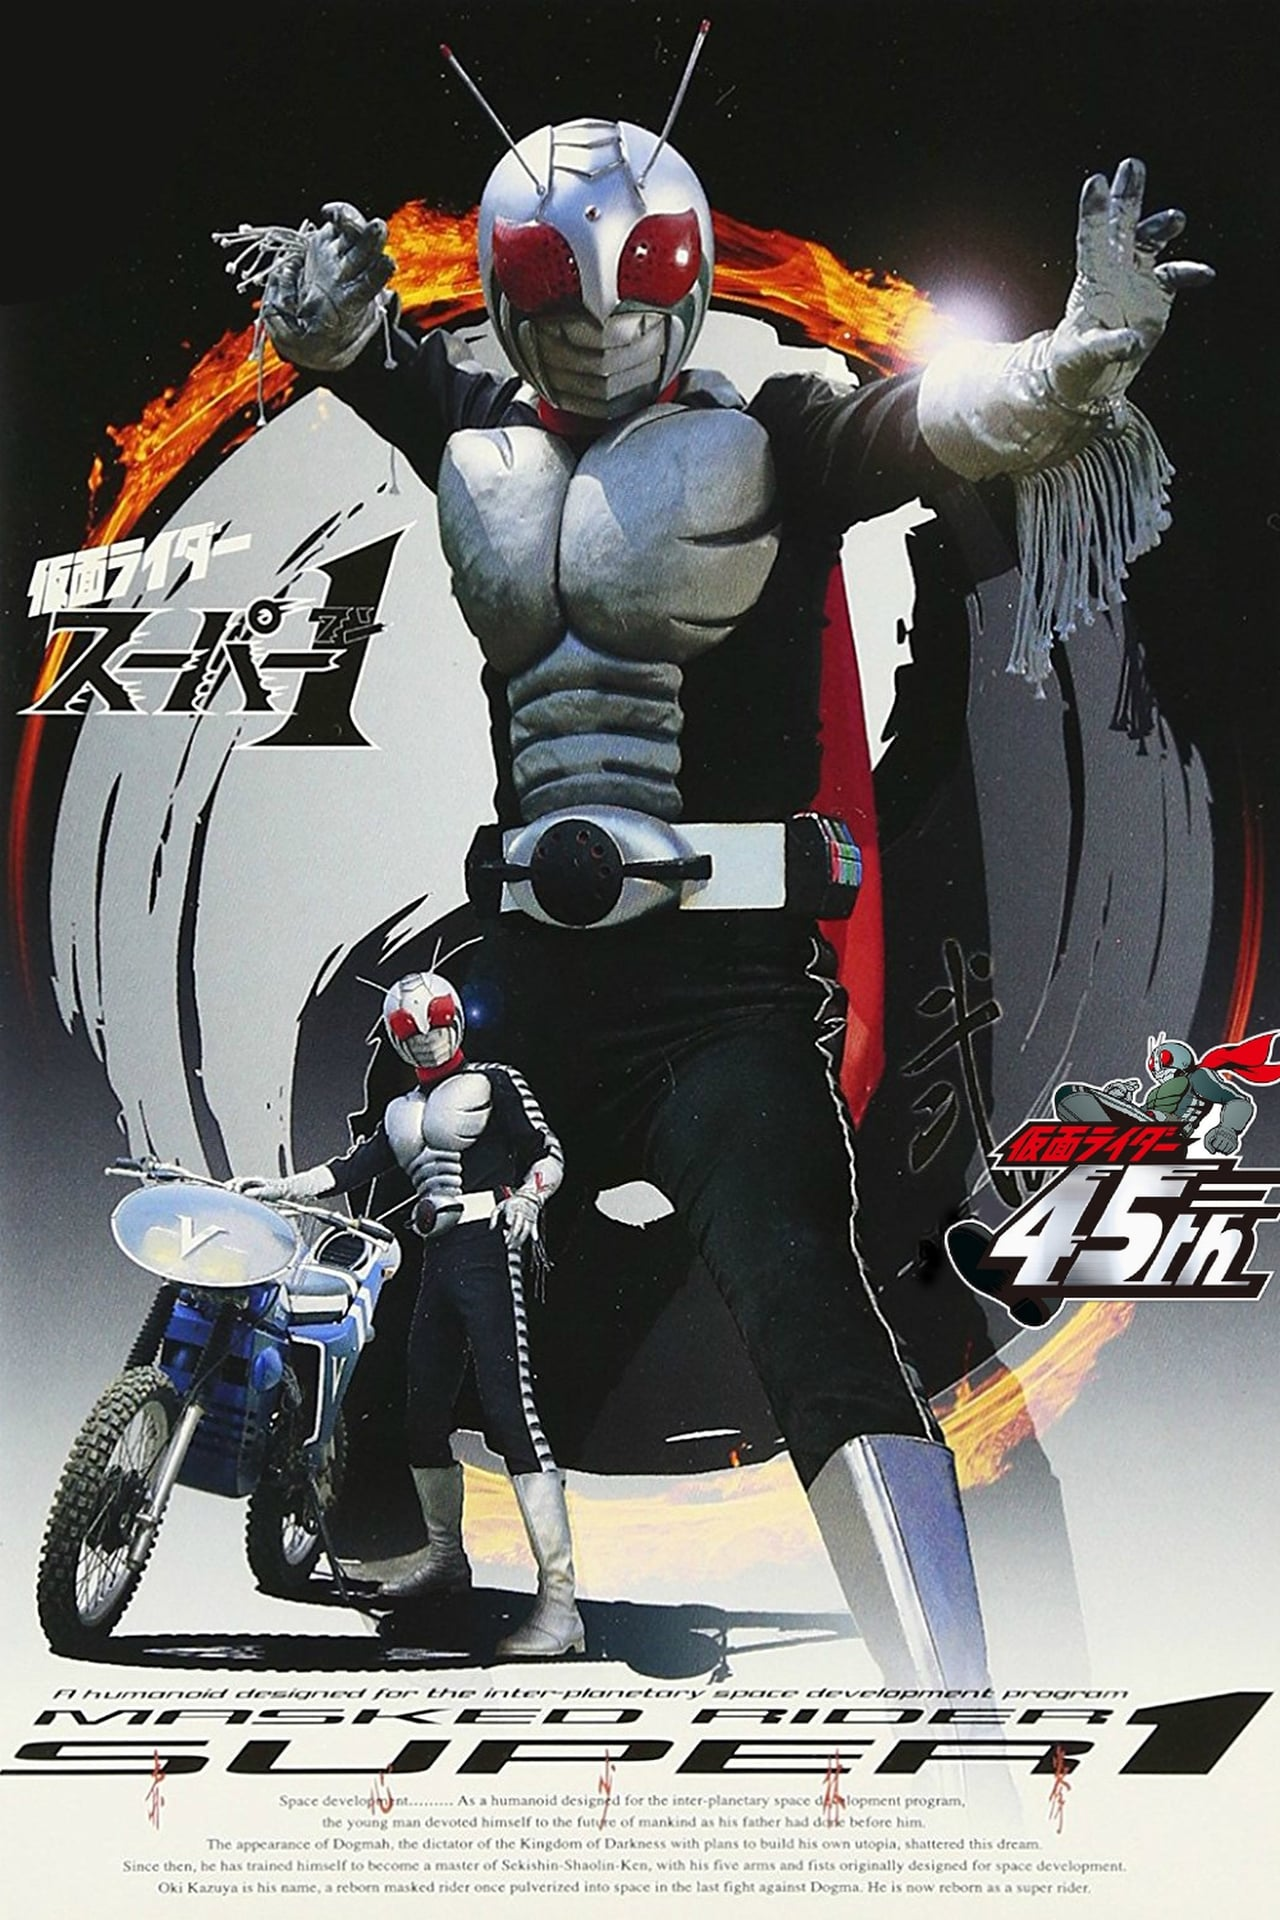 Watch Kamen Rider Season 7 Online